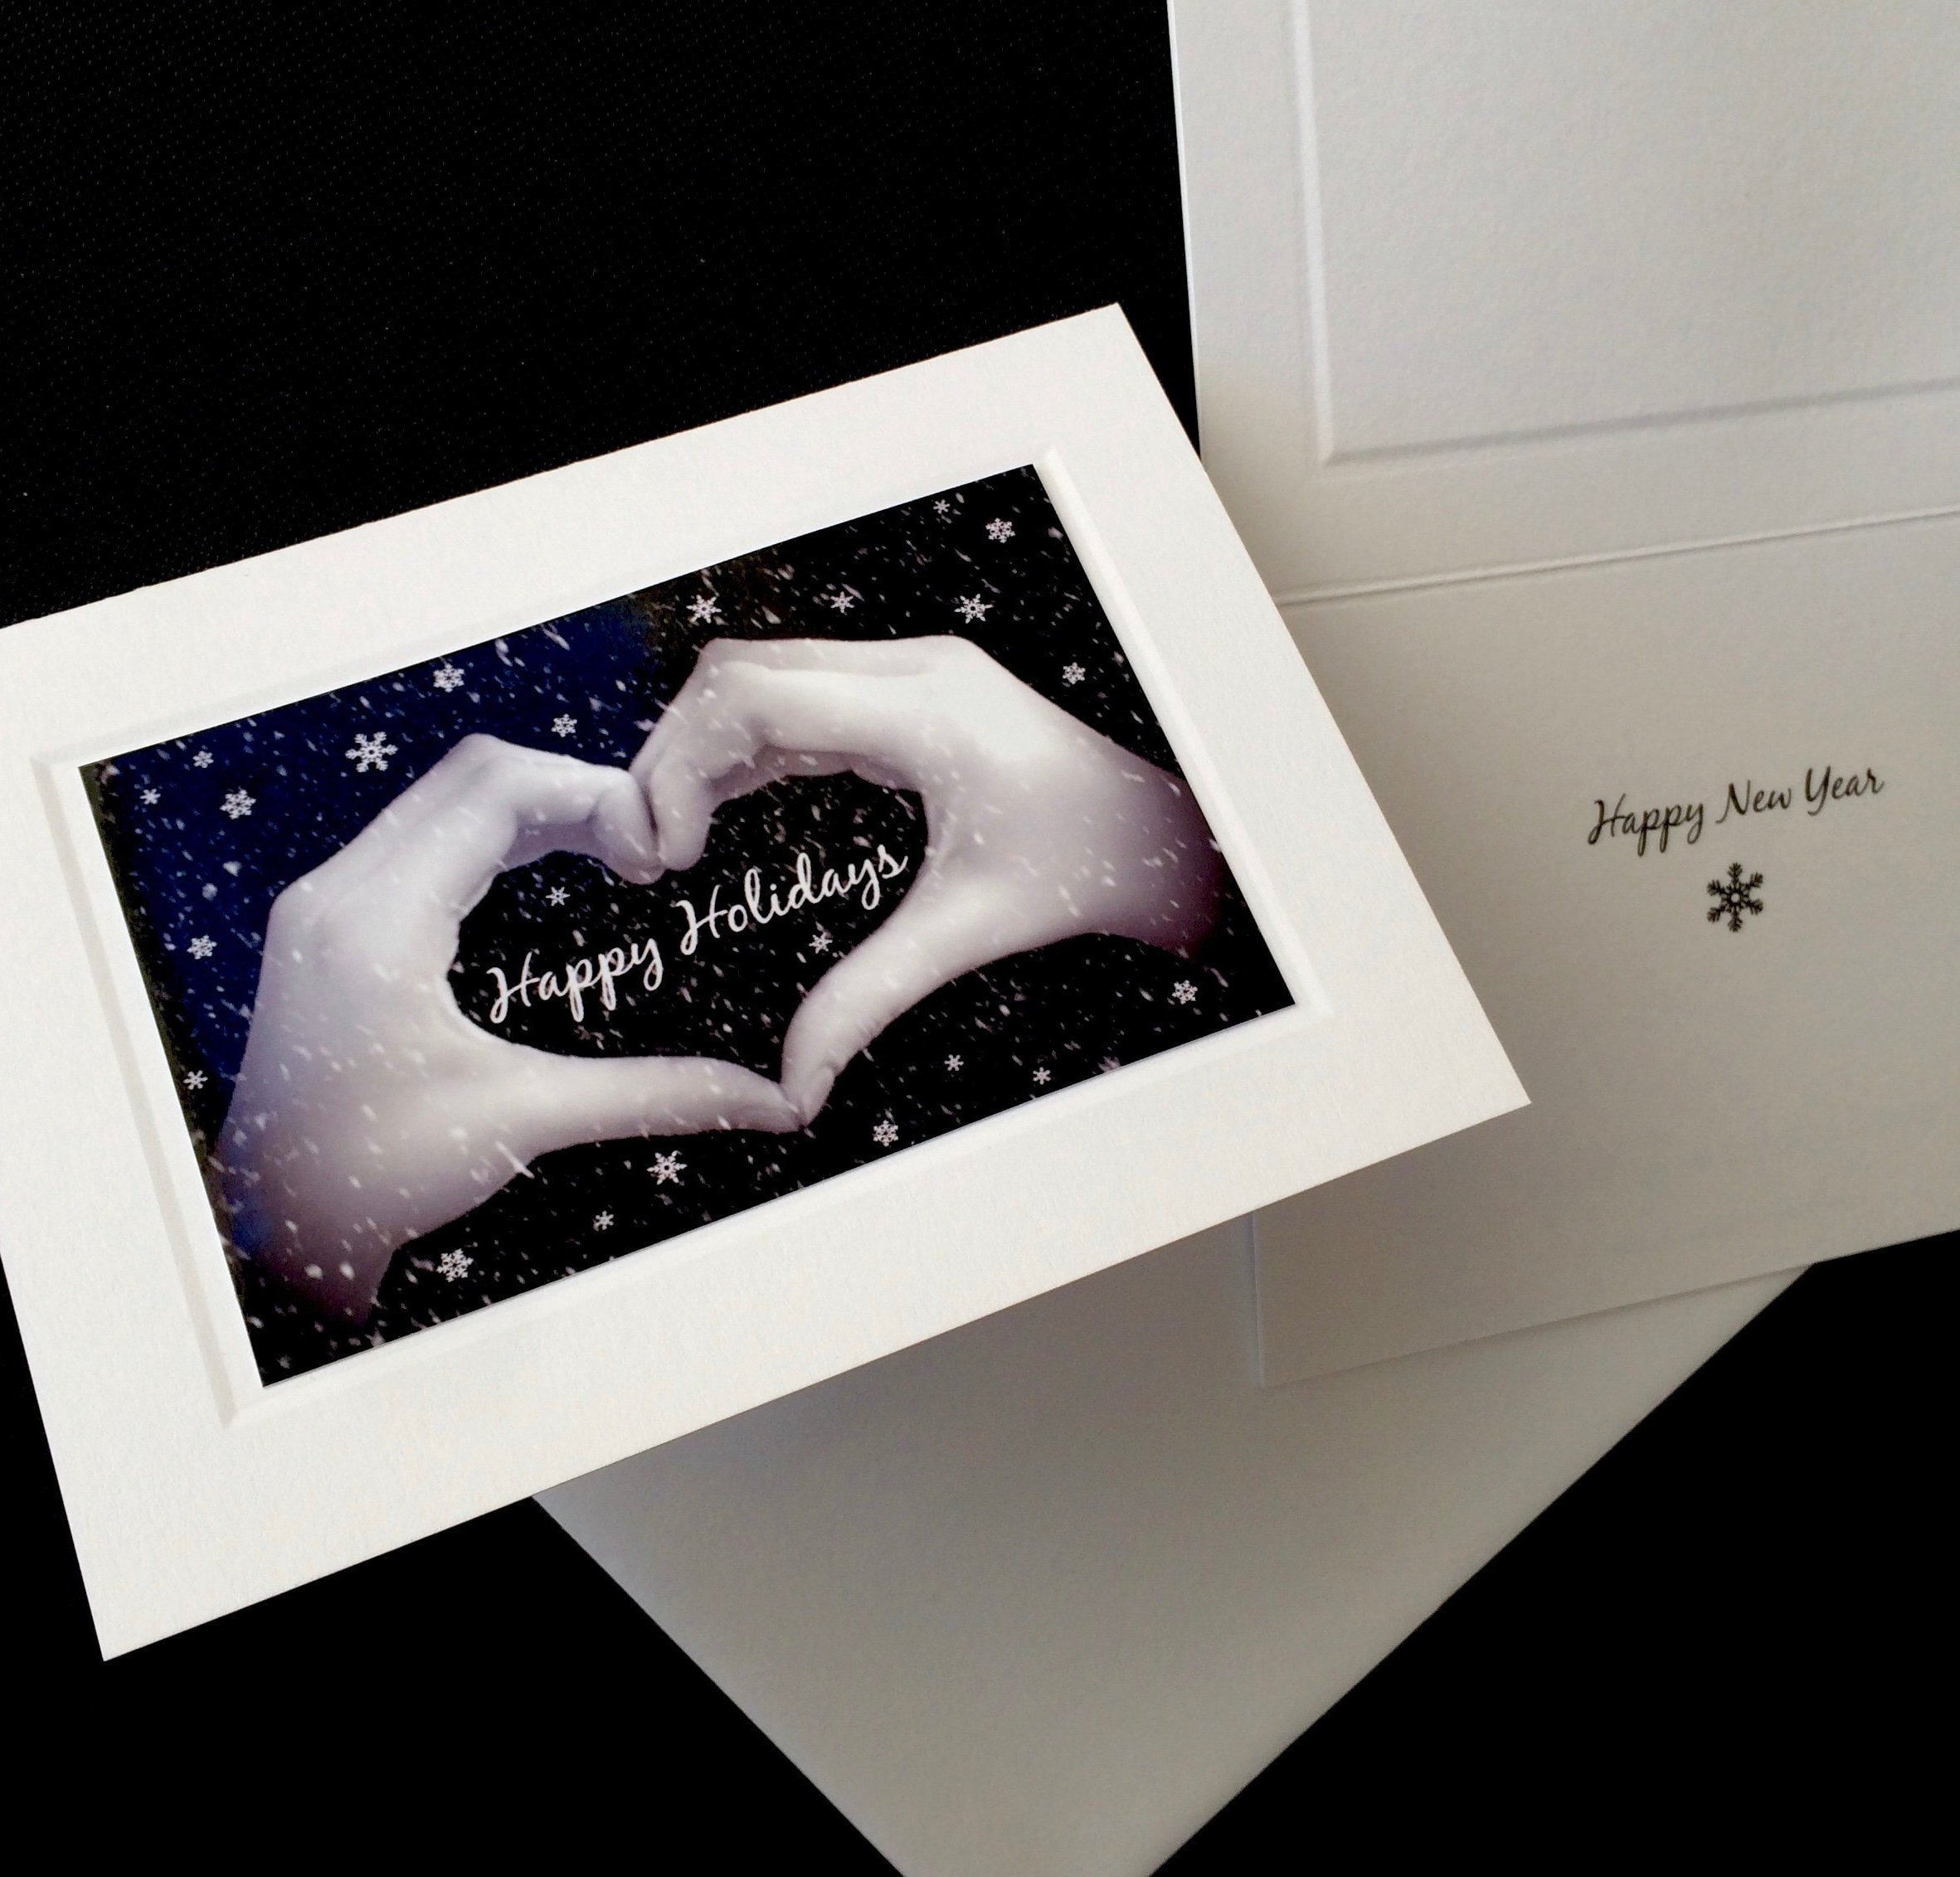 happy holidays heart hands sign language card black white photo holiday and new years card individual